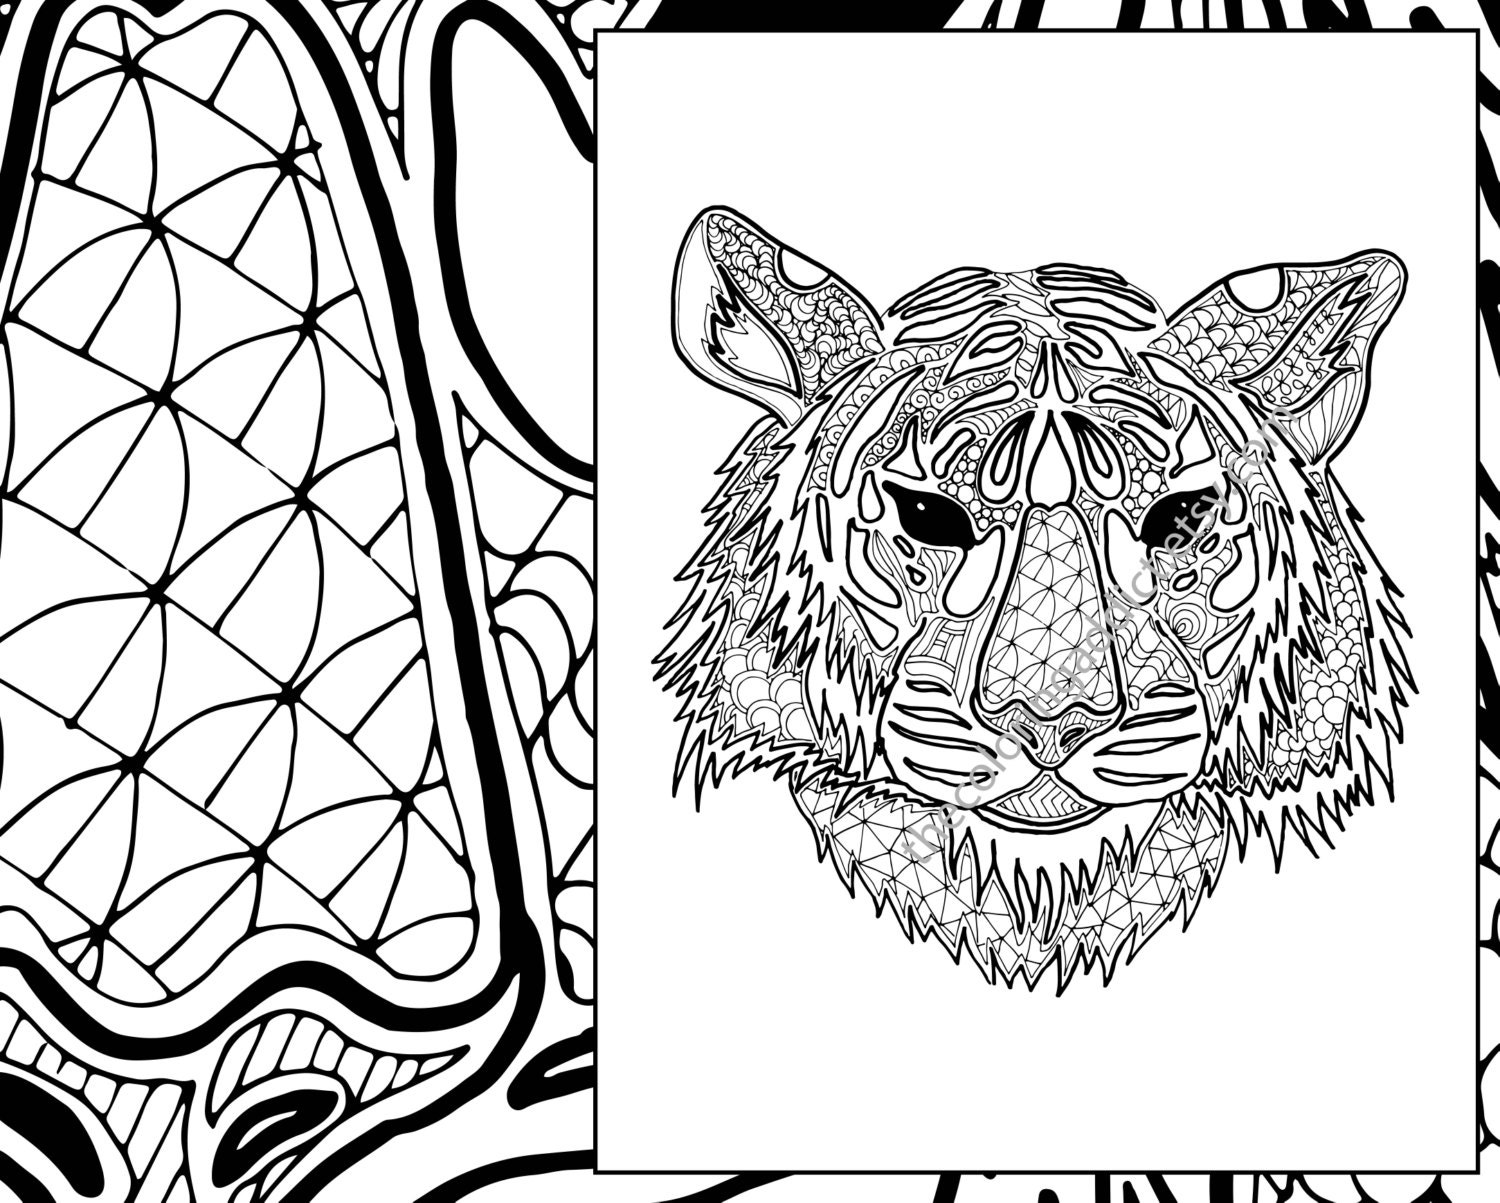 Coloring Pages Zentangle Animals : Animal zentangle colouring images